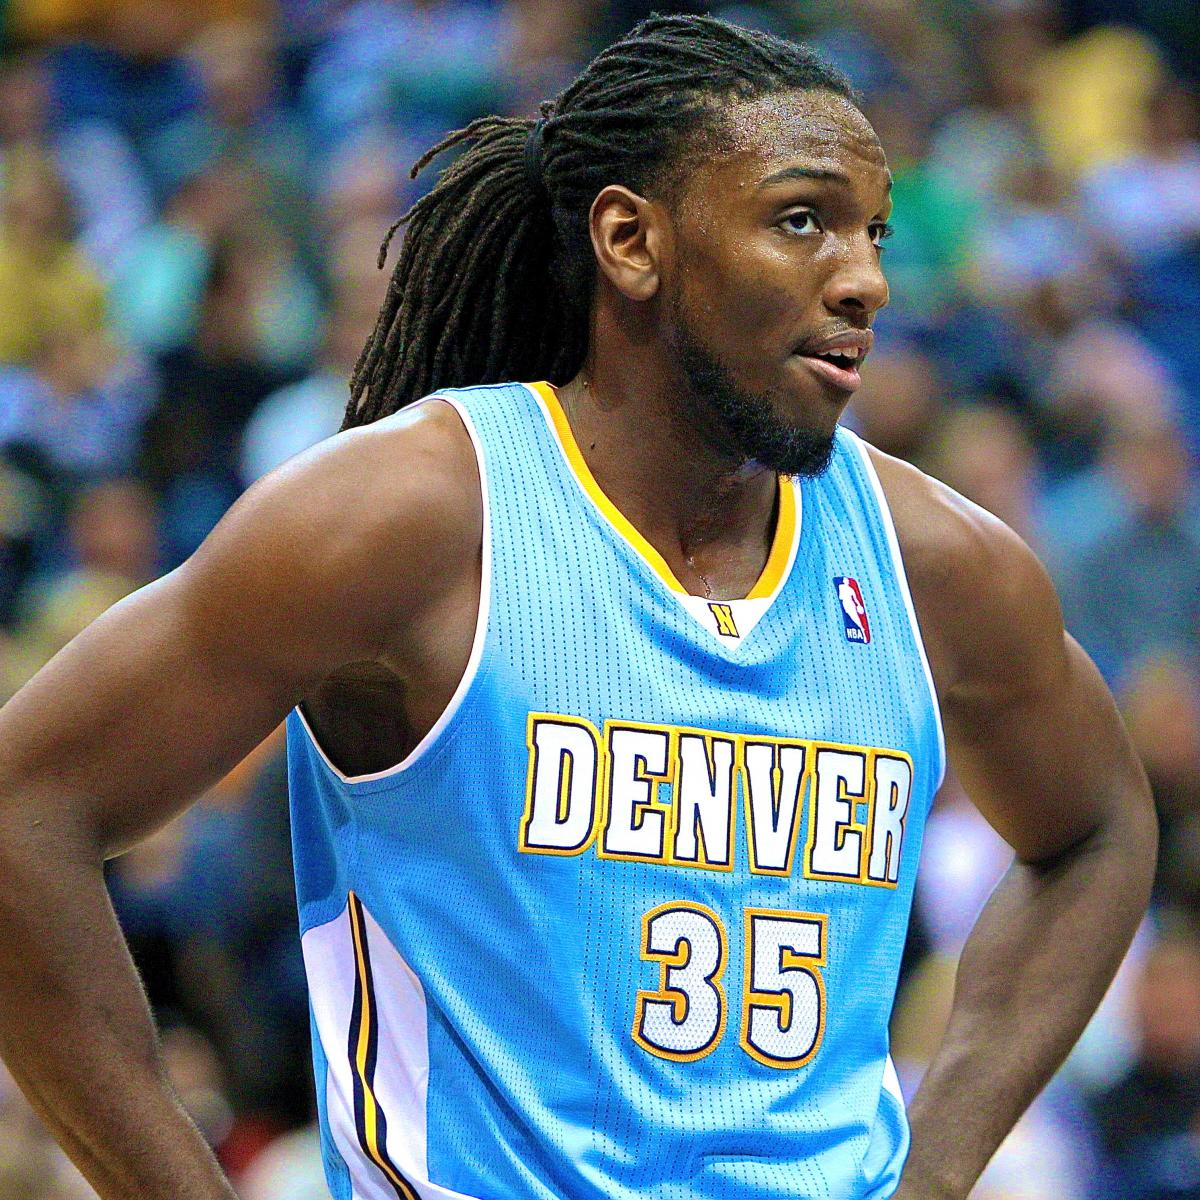 Nuggets Starting Lineup: Kenneth Faried Injury: Updates On Nuggets Forward's Ankle